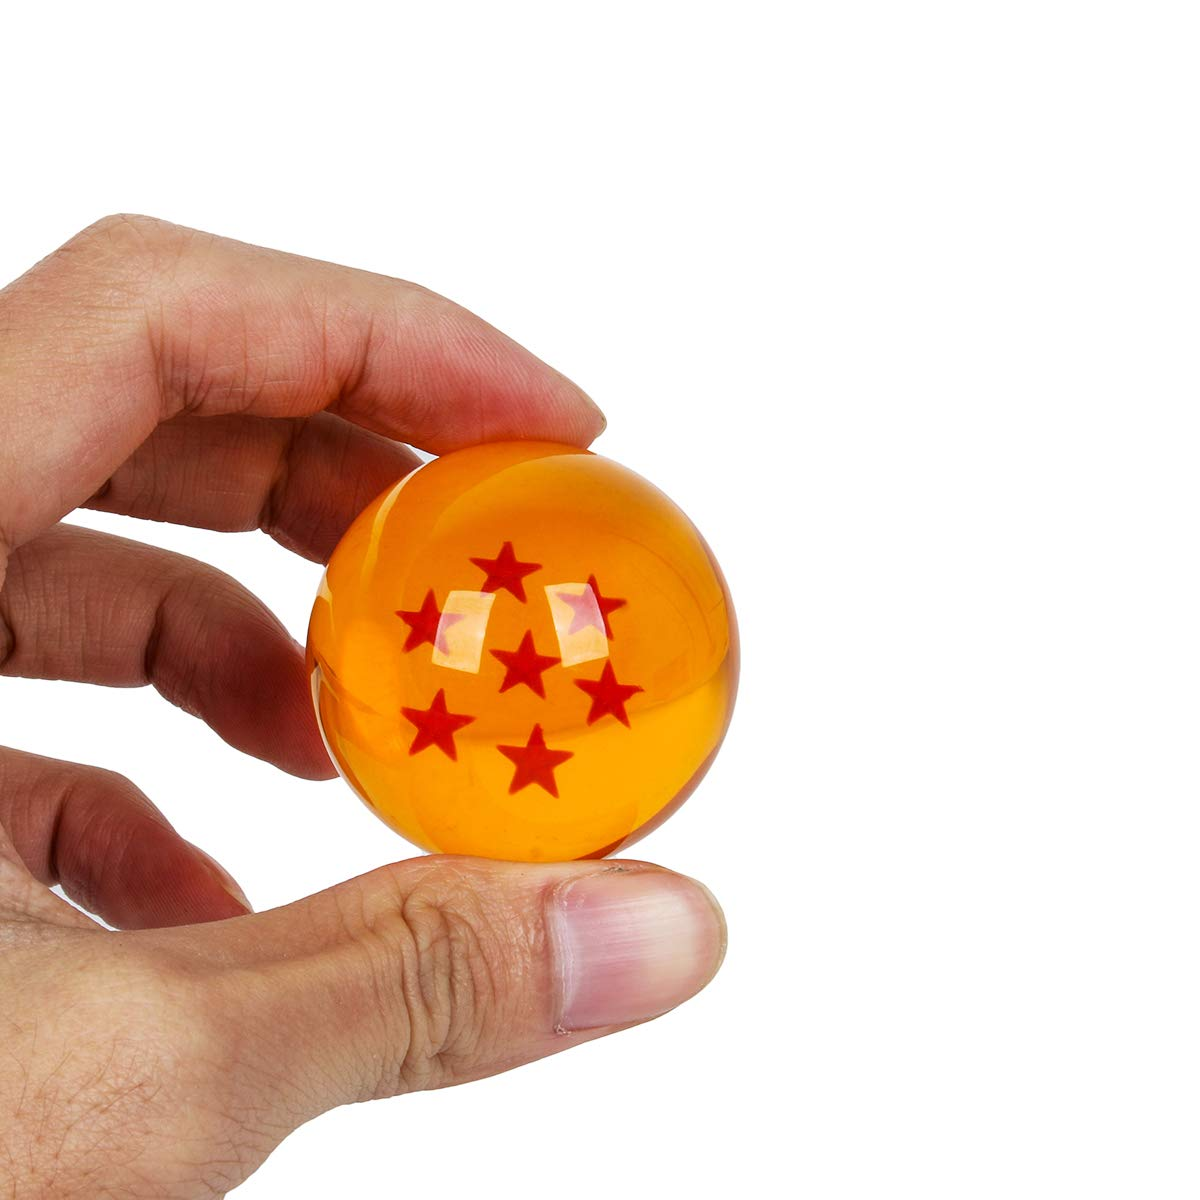 WeizhaonanCos Unisex Acrylic Resin Transparent Stars Balls Glass Ball Dragon Ball Cosplay Props Kids Play Toy Gift Set of 7pcs 43mm/1.7 in in Diameter (Orange) by WeizhaonanCos (Image #5)